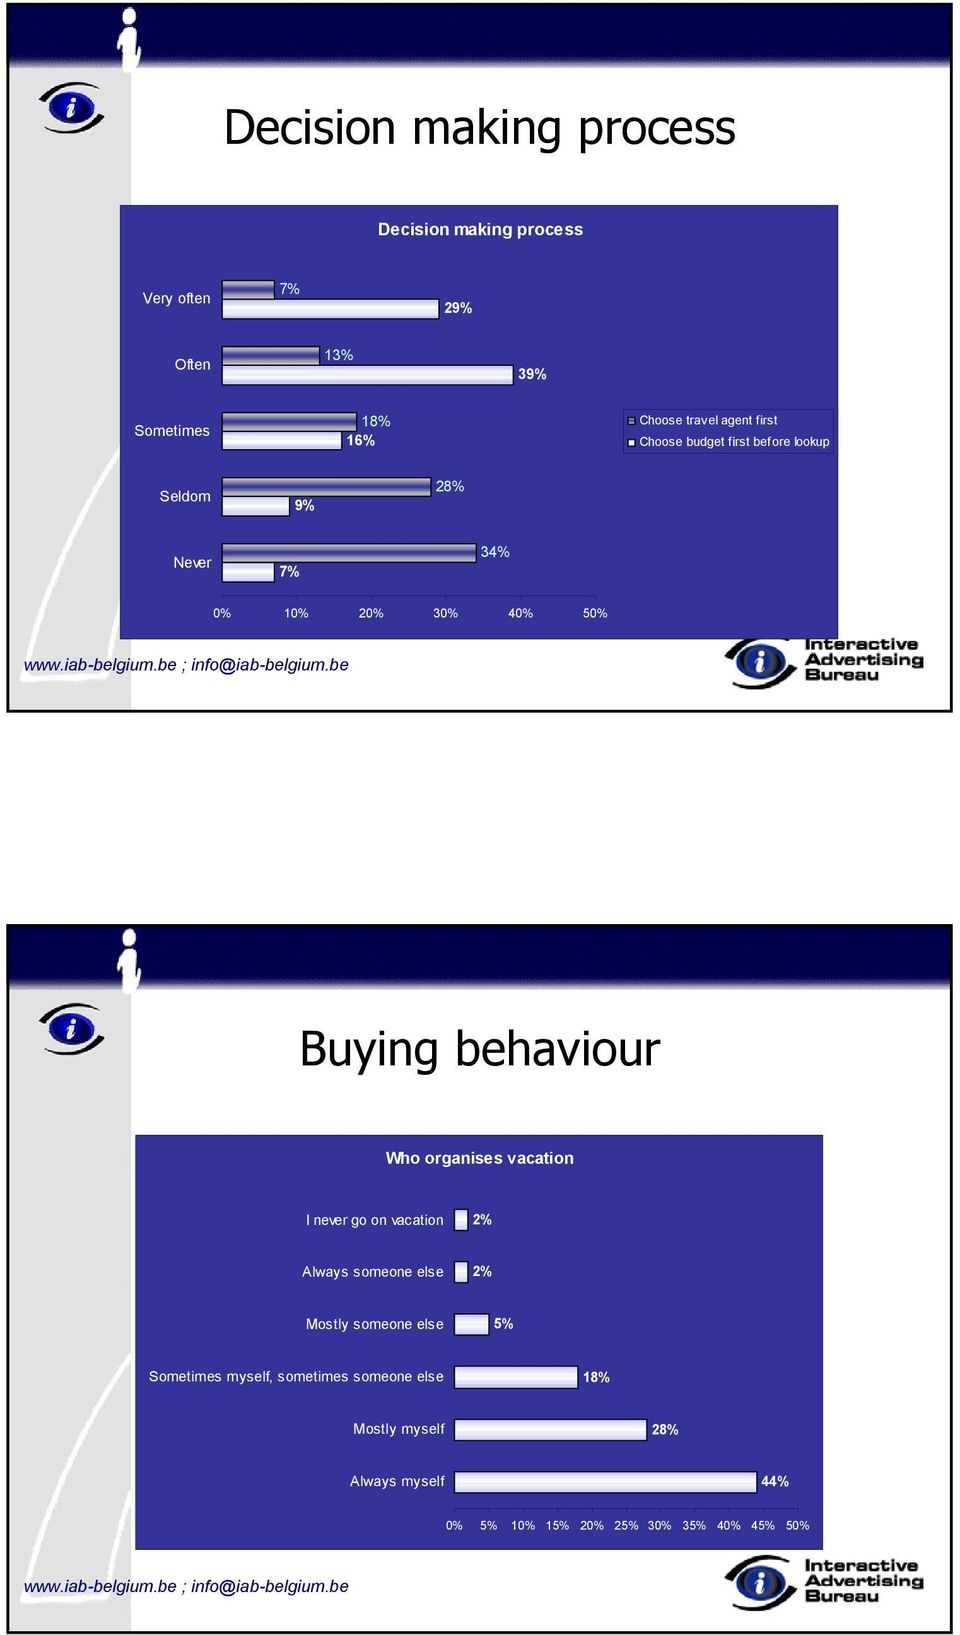 Buying behaviour Who organises vacation I never go on vacation Always someone else Mostly someone else 5%